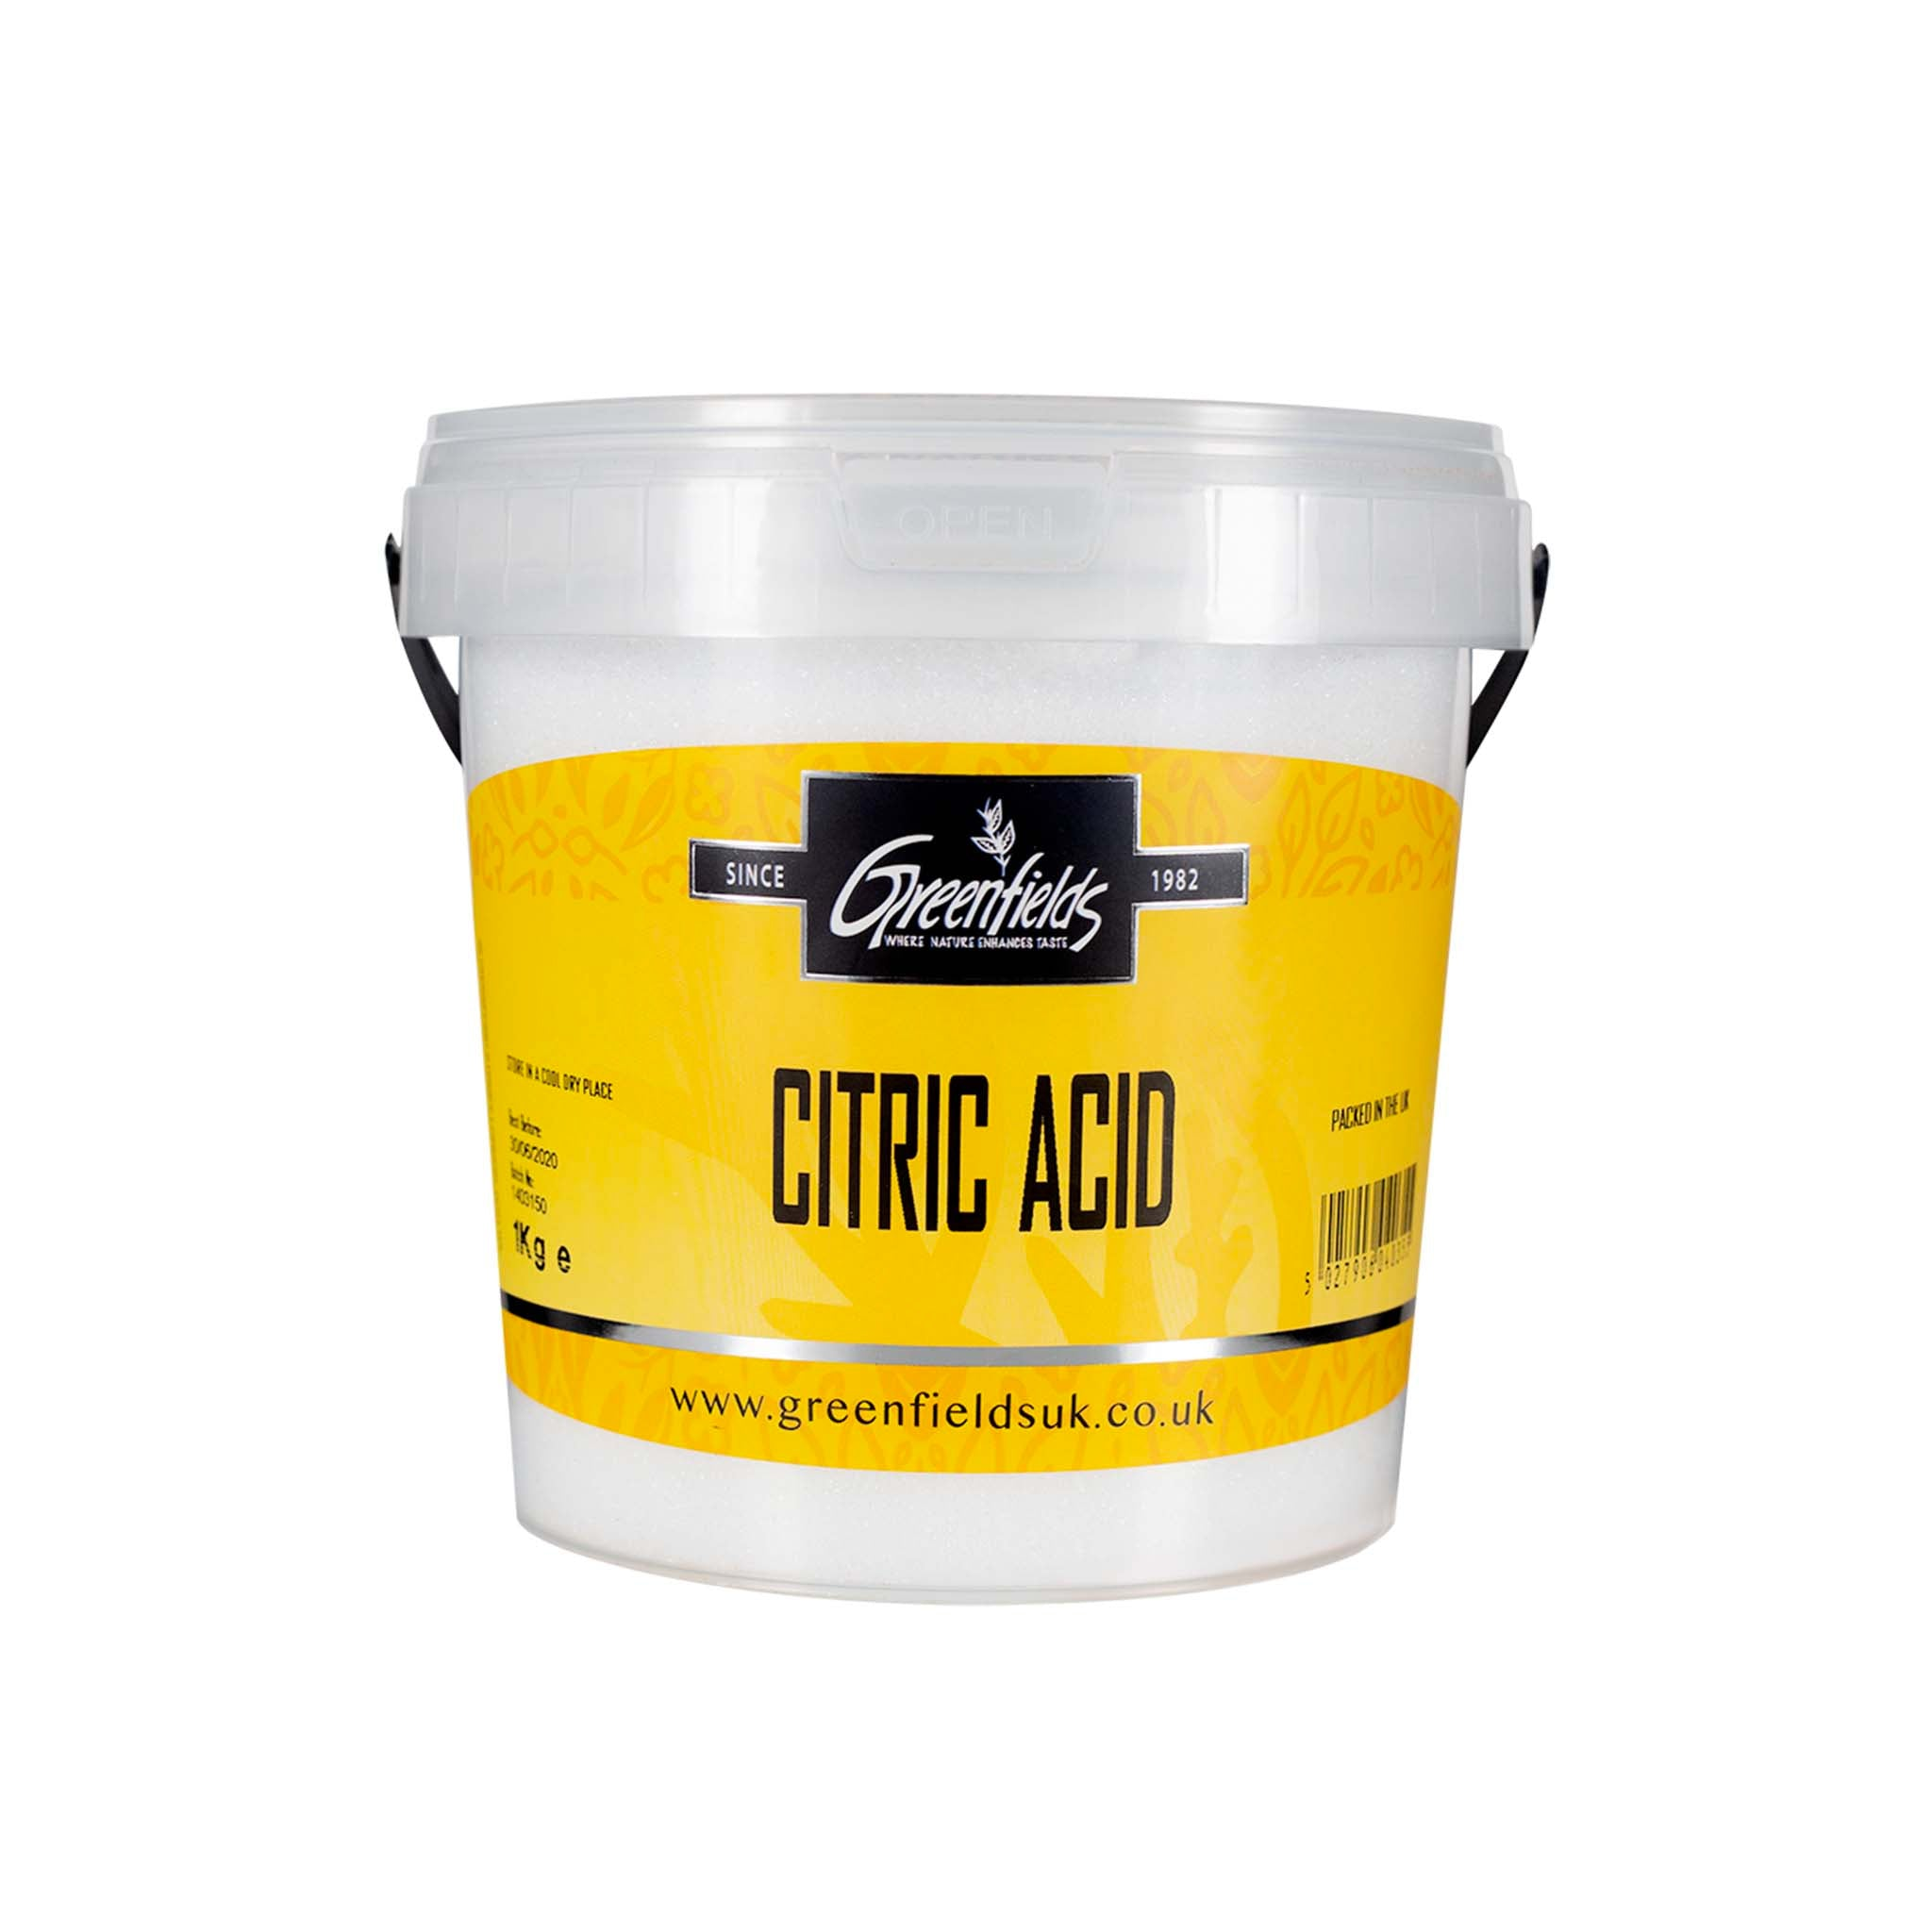 Greenfields Citric Acid